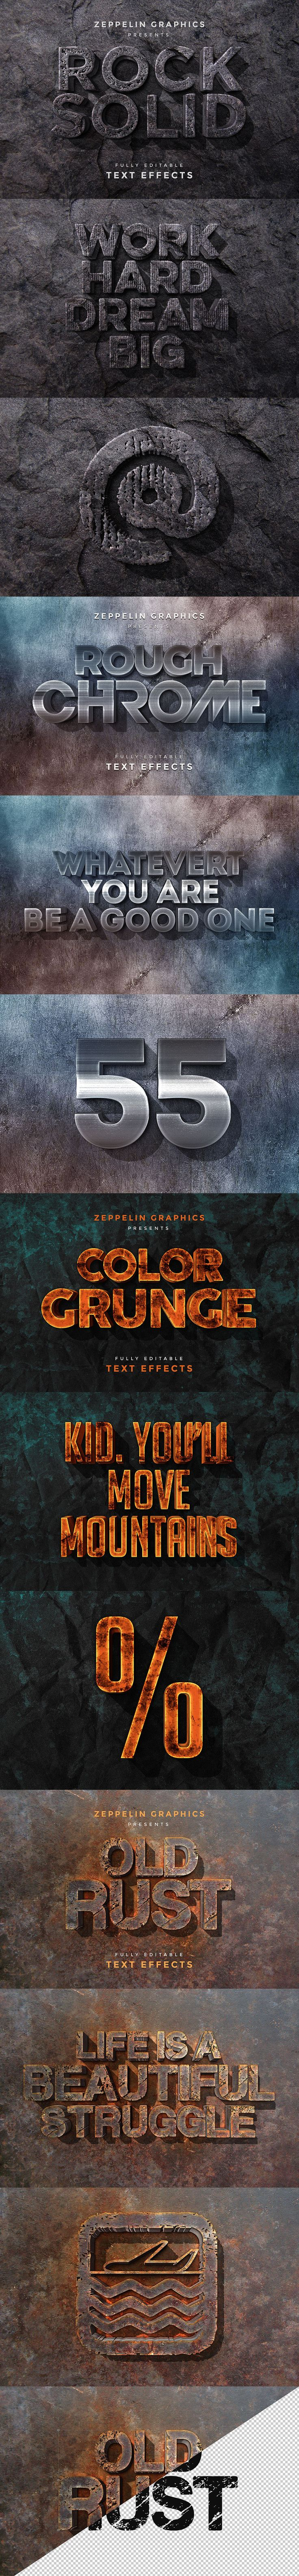 3D Text Effects Bundle - Dealjumbo.com — Discounted design bundles with extended license!